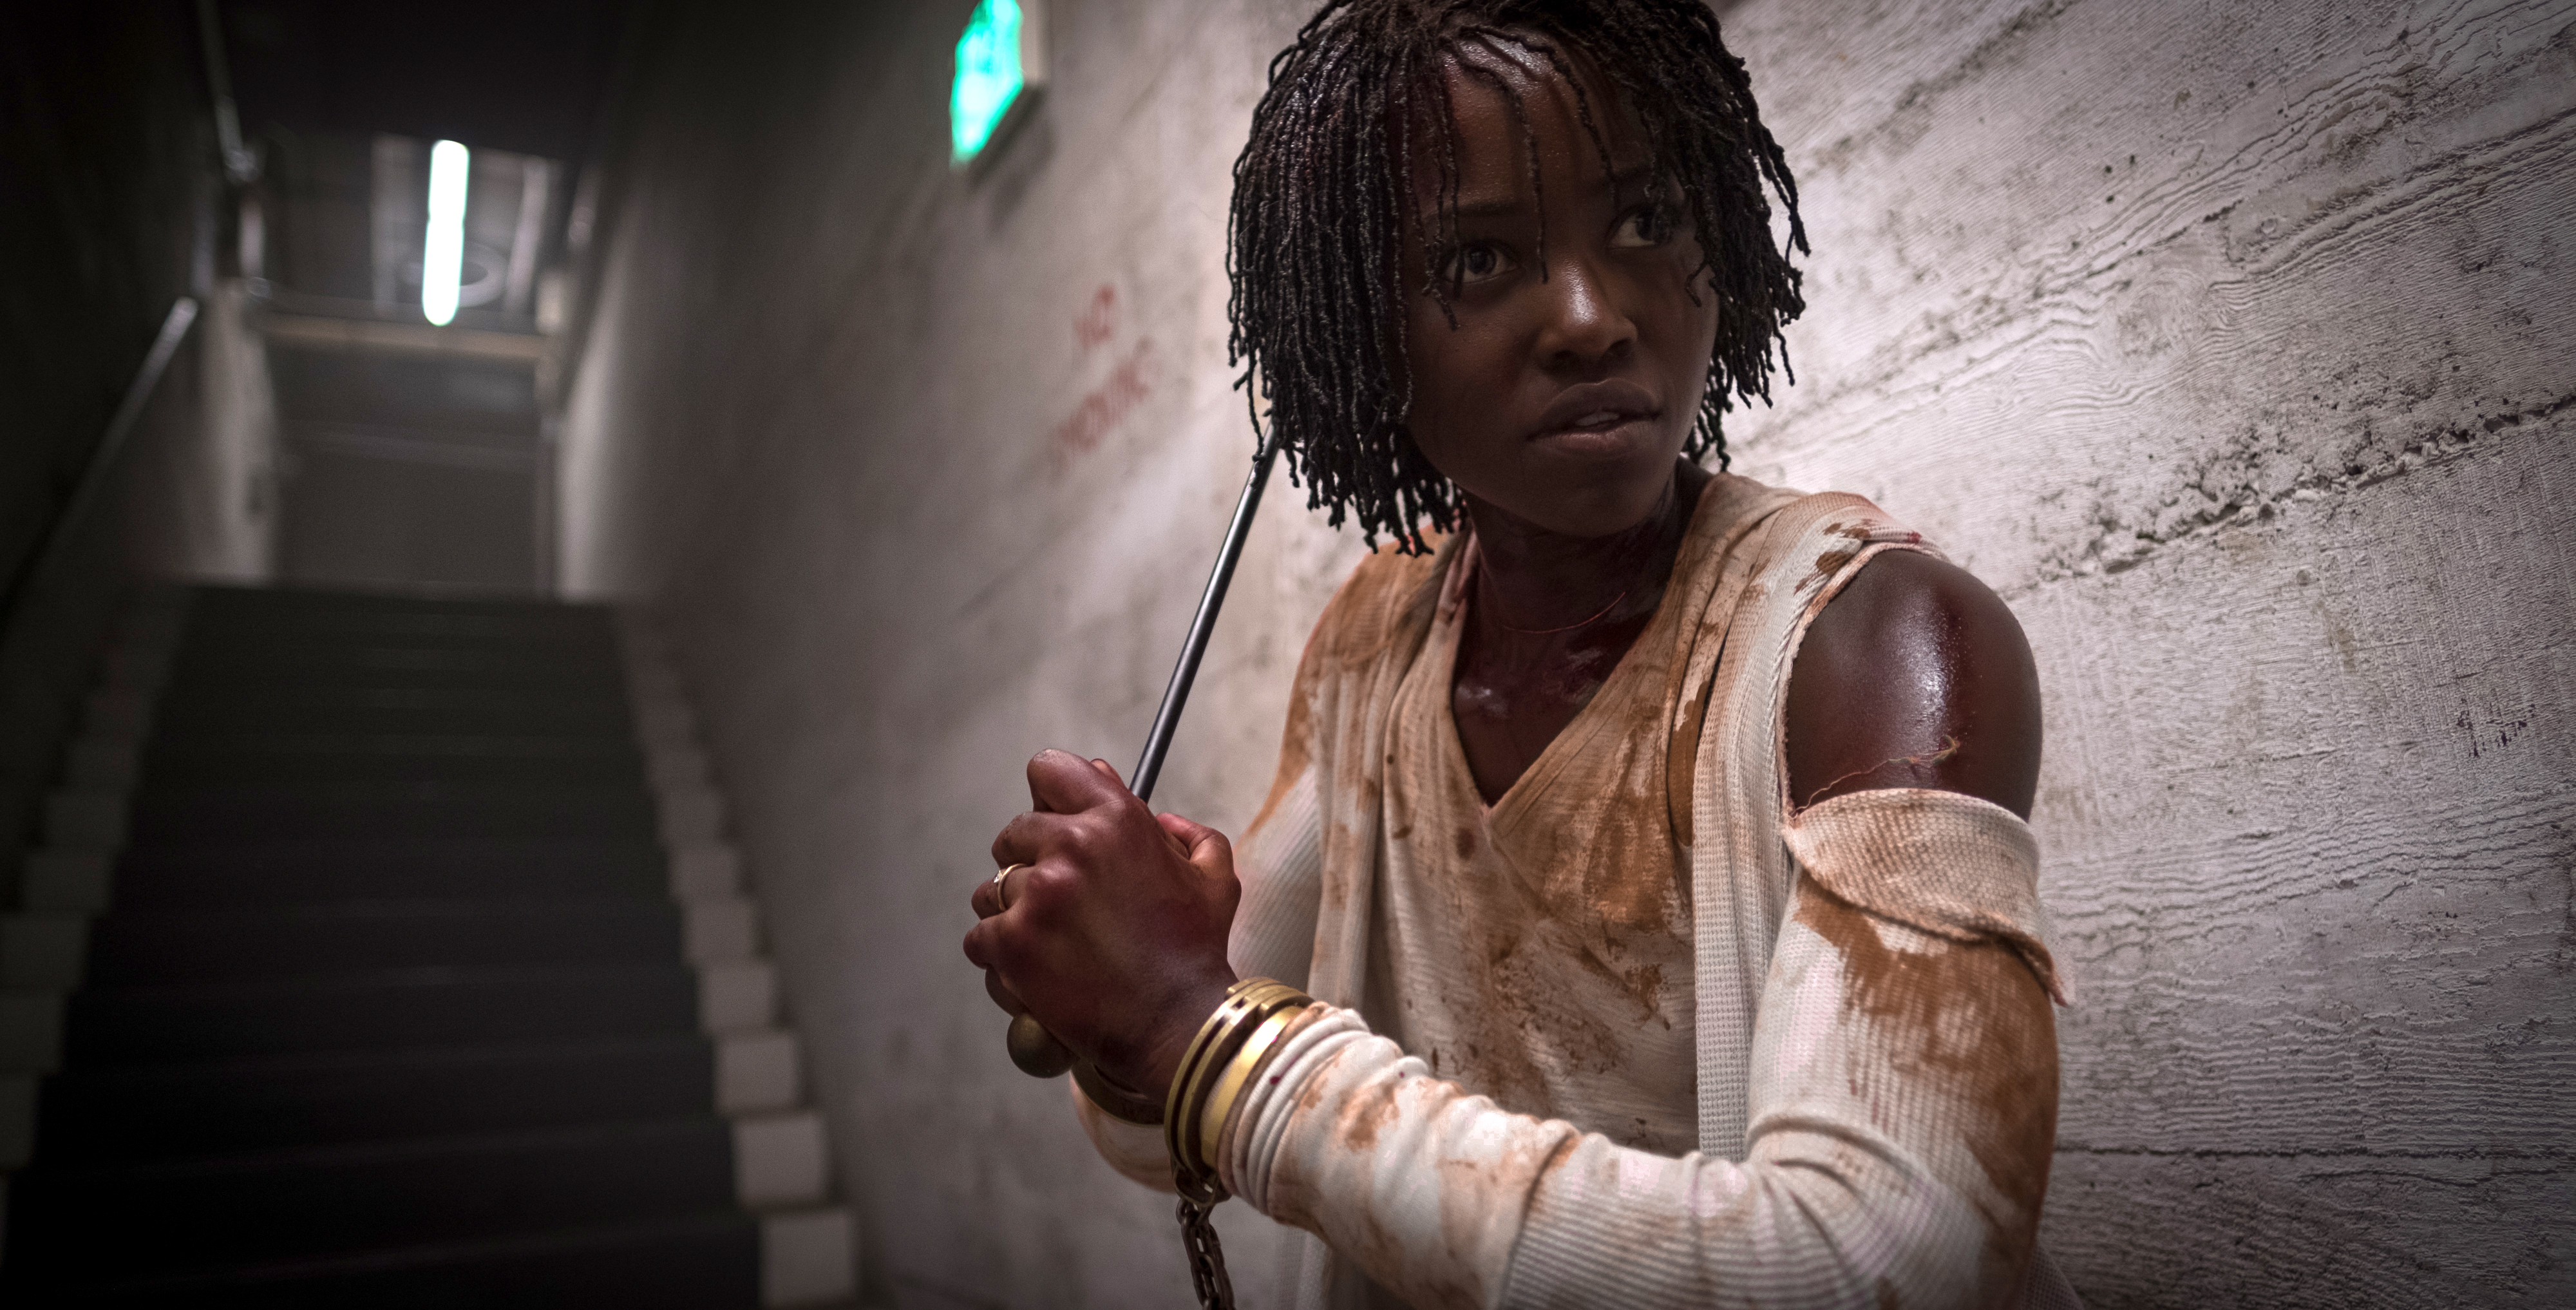 Watch the New Trailer for Jordan Peele's US